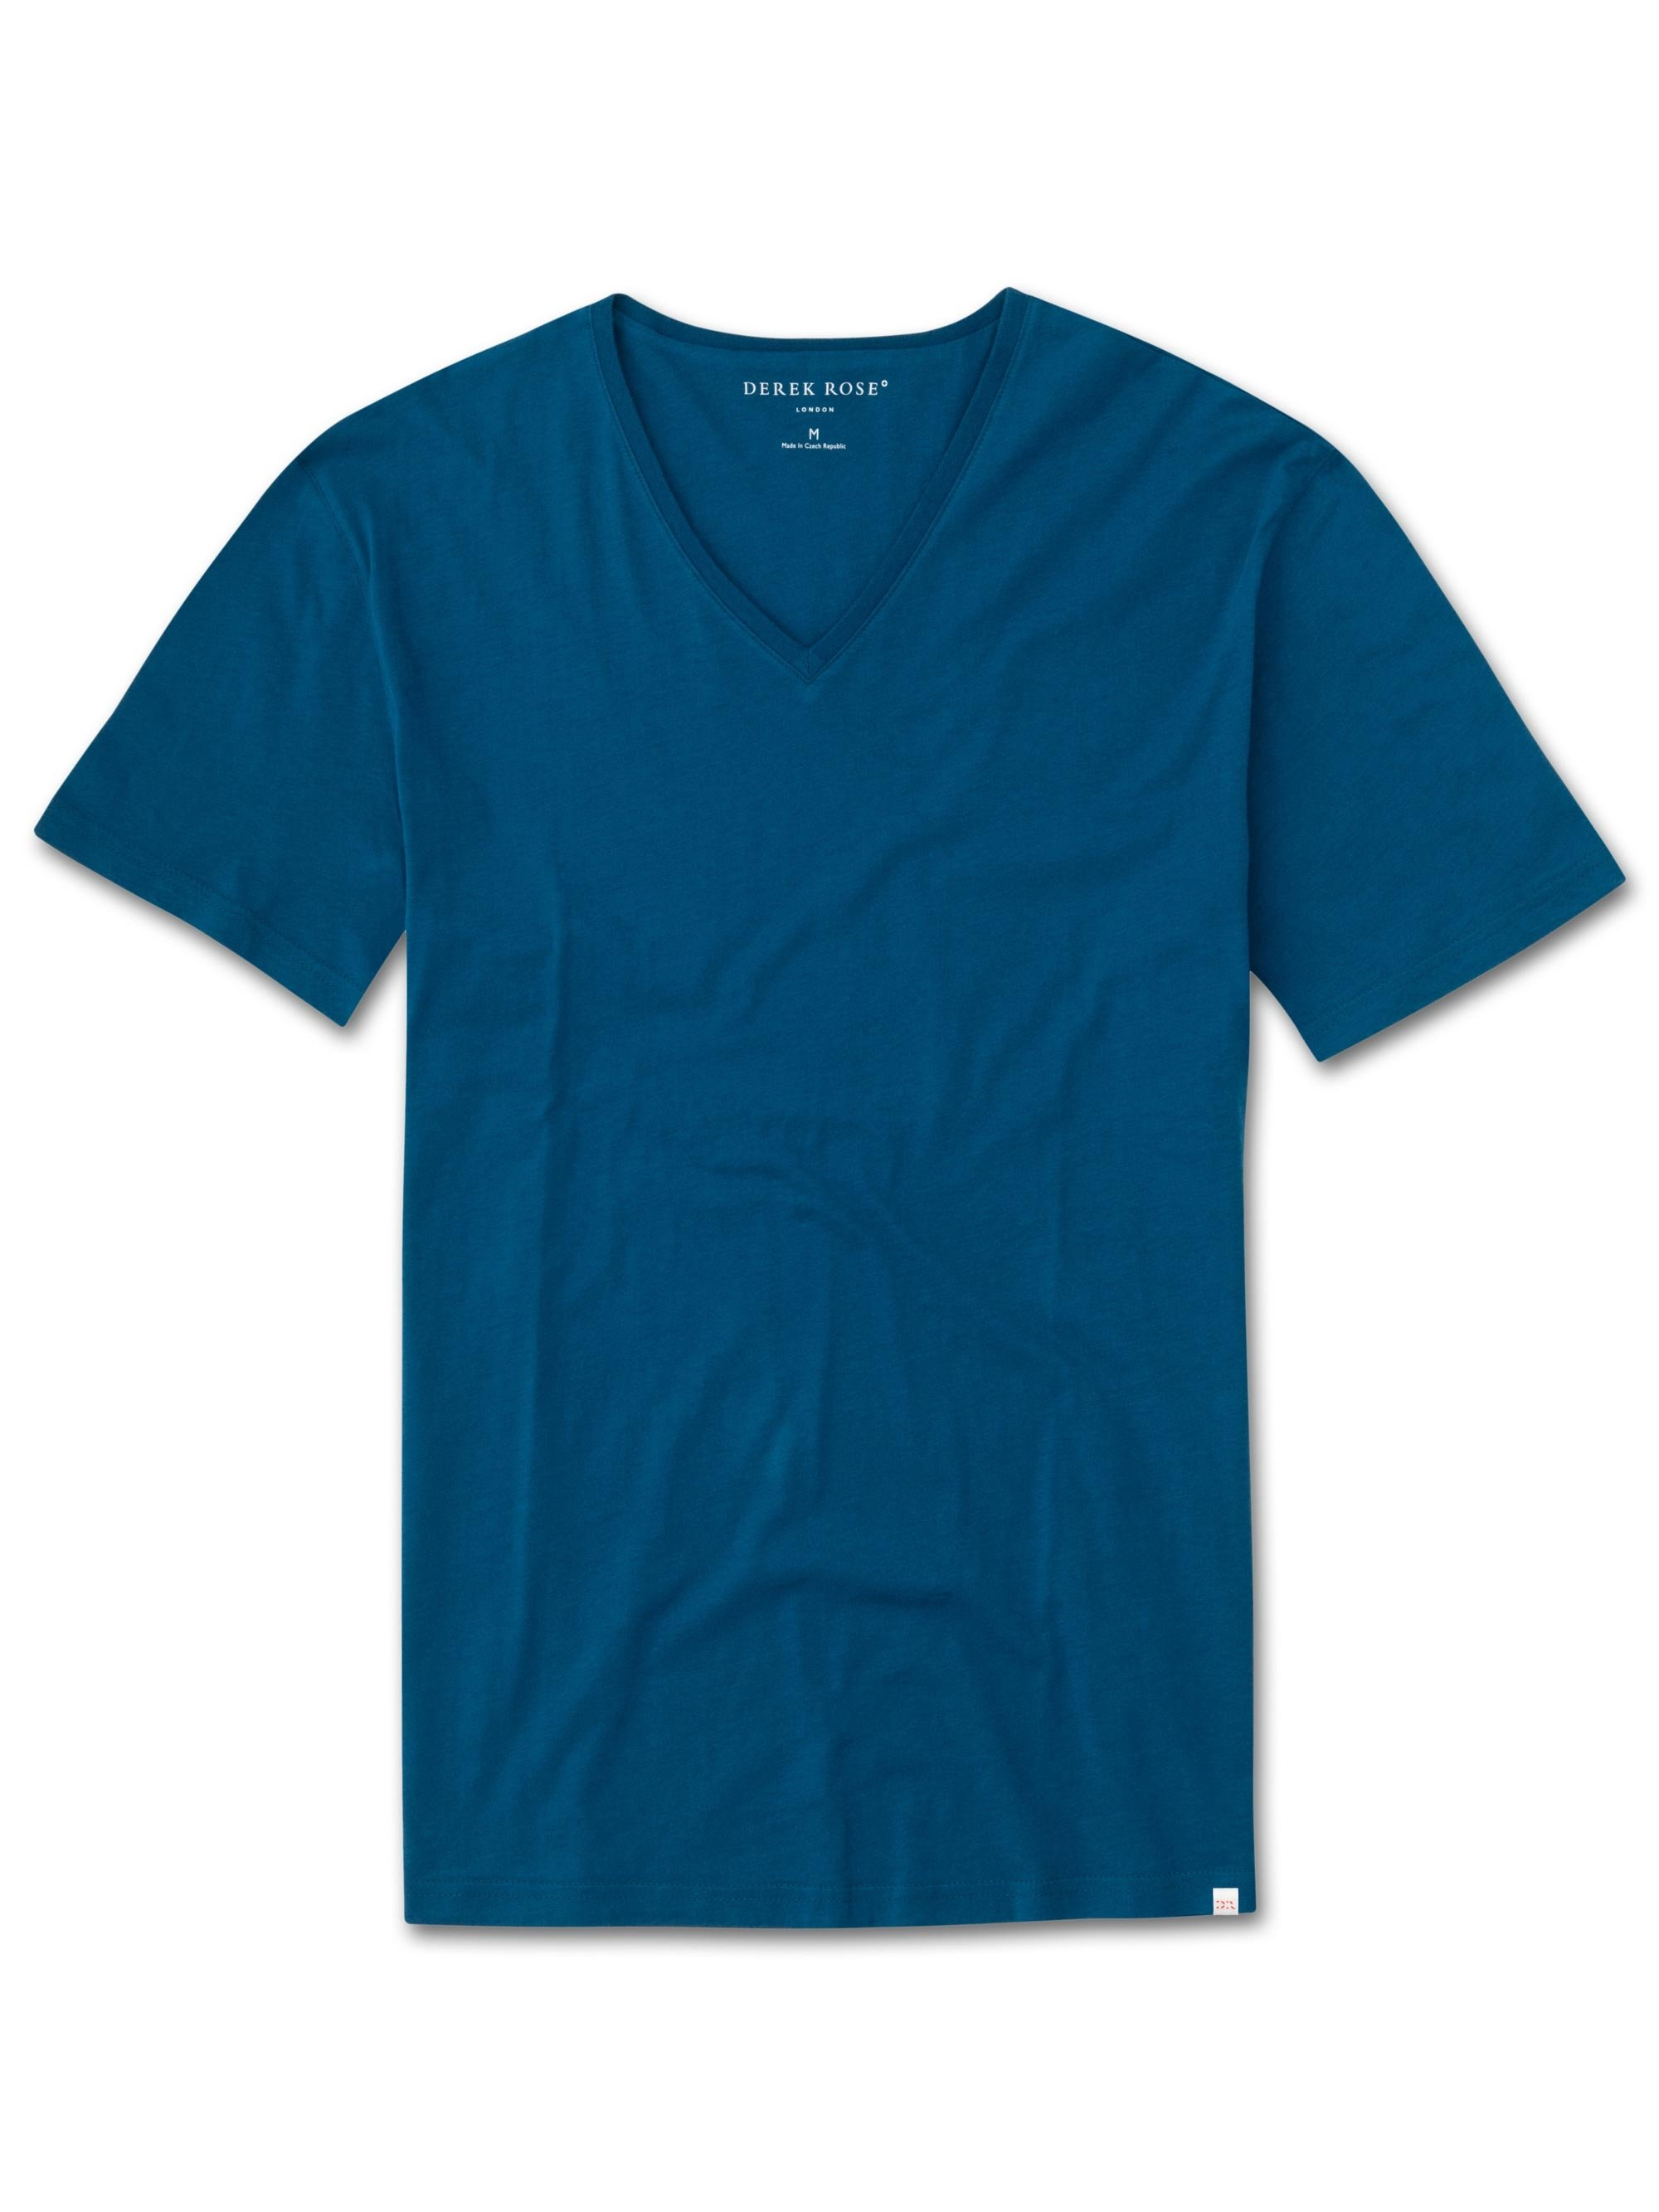 Men's Short Sleeve V-Neck T-Shirt Riley 2 Pima Cotton Ocean